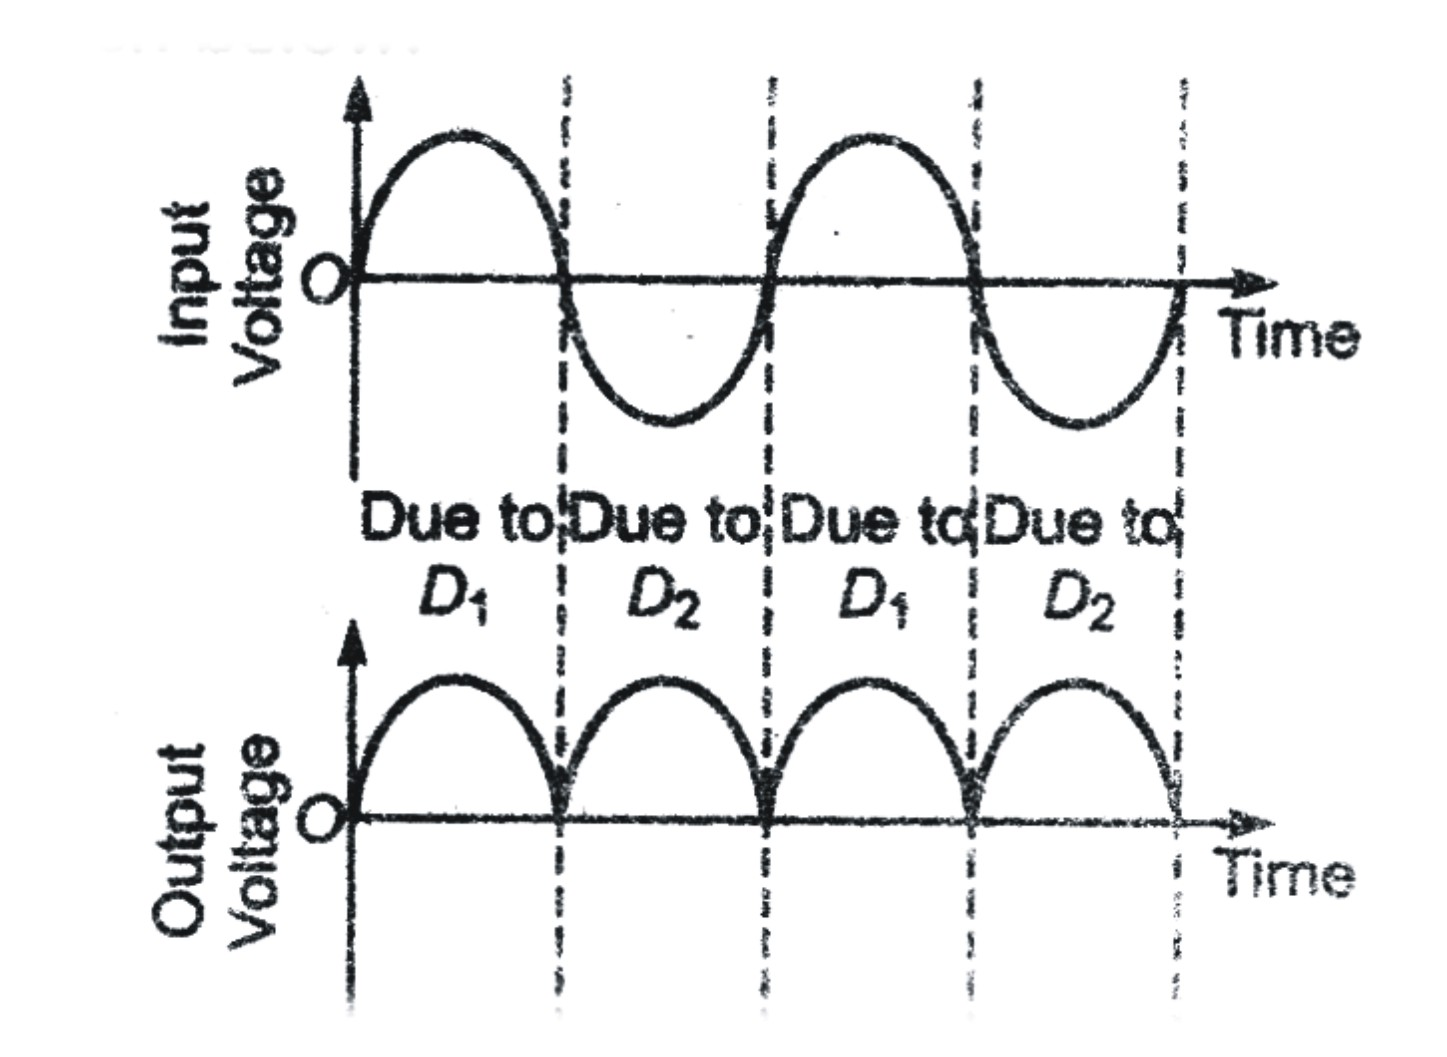 pn- junction   previous year u0026 39 s questions